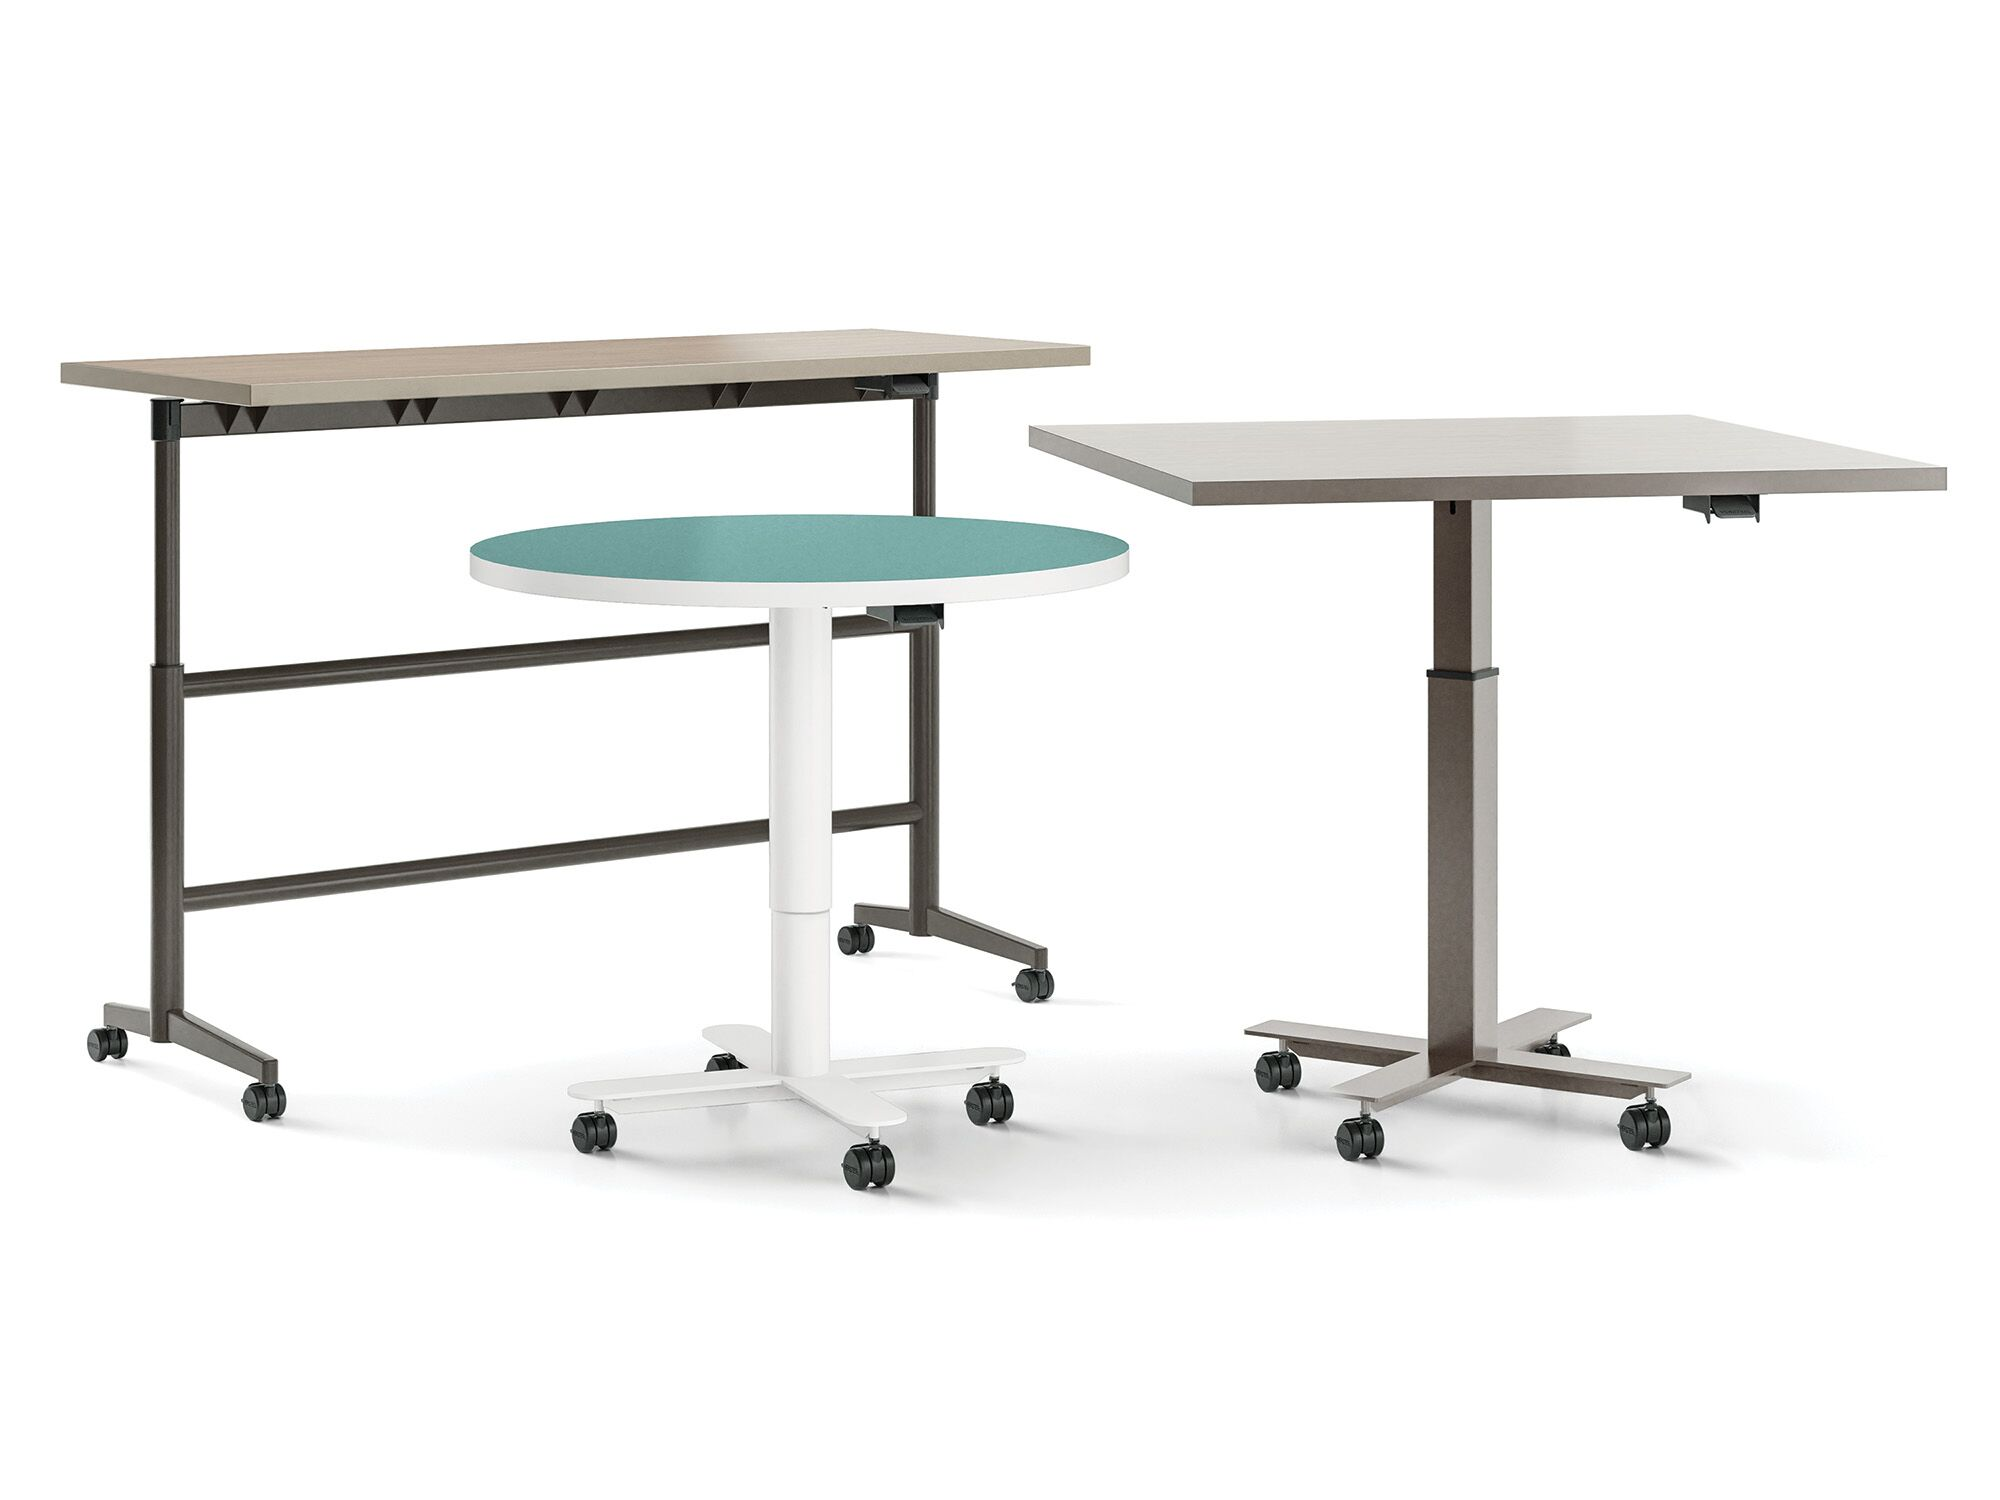 3 models of Versteel Sky adjustable-height tables